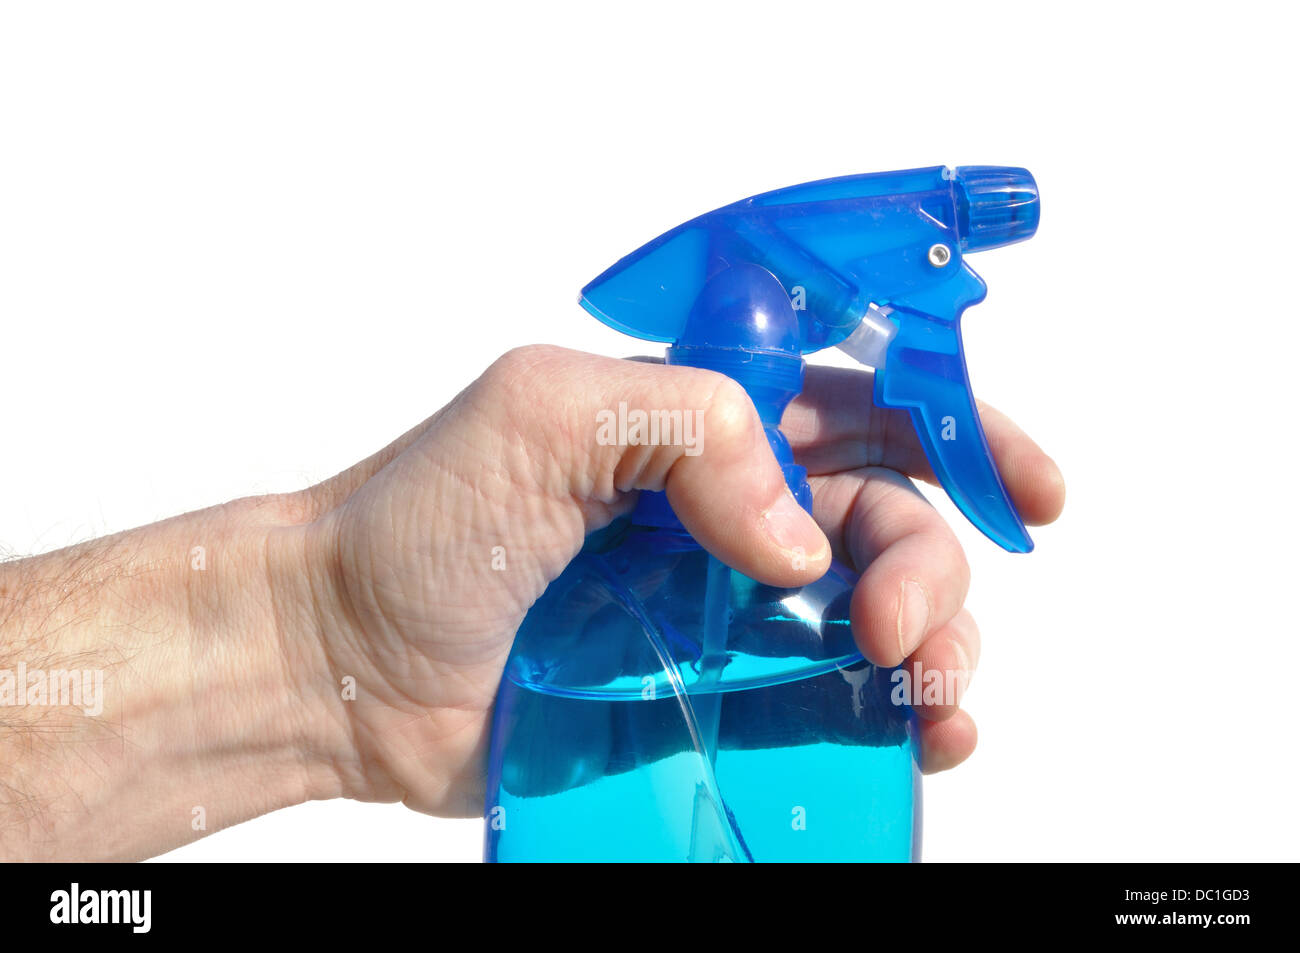 Spray cleaning bottle - Stock Image